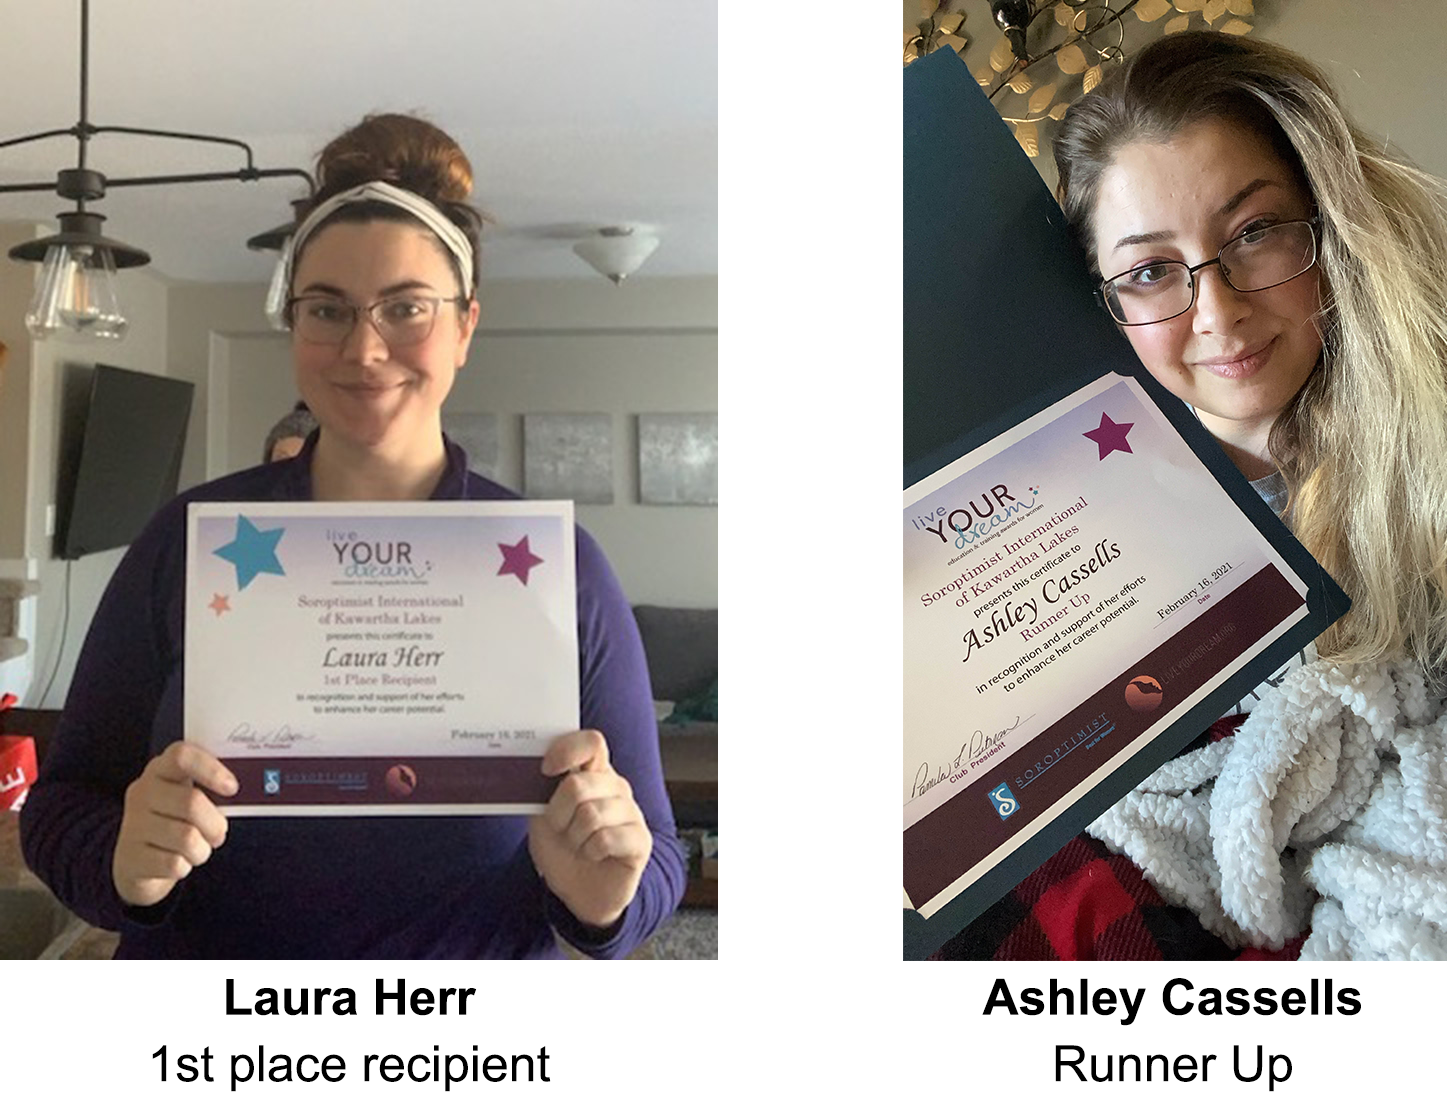 Laura Herr and Ashley Cassells - recipients of the 2021 Live Your Dream Award